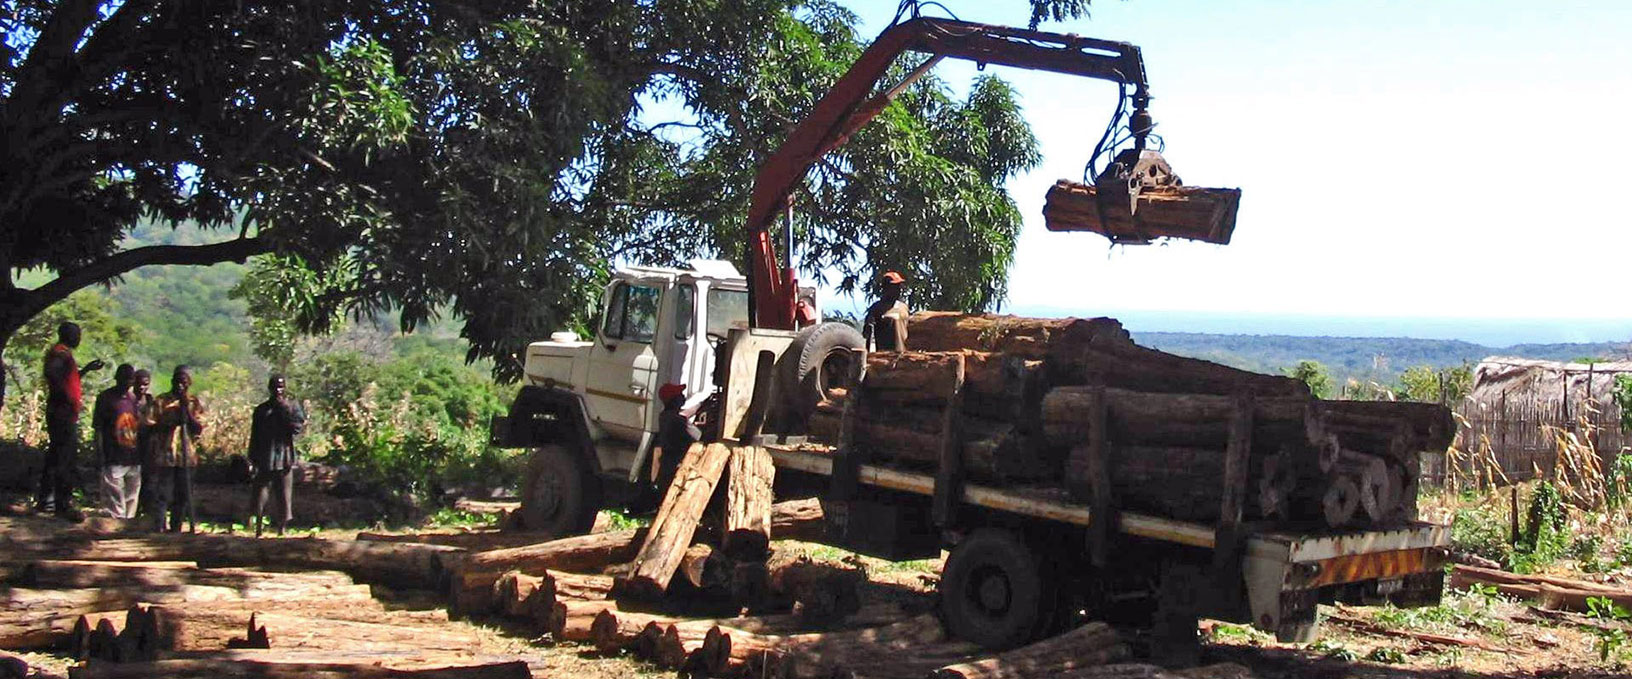 01. First transport from tanzanian border transport with Samil army truck